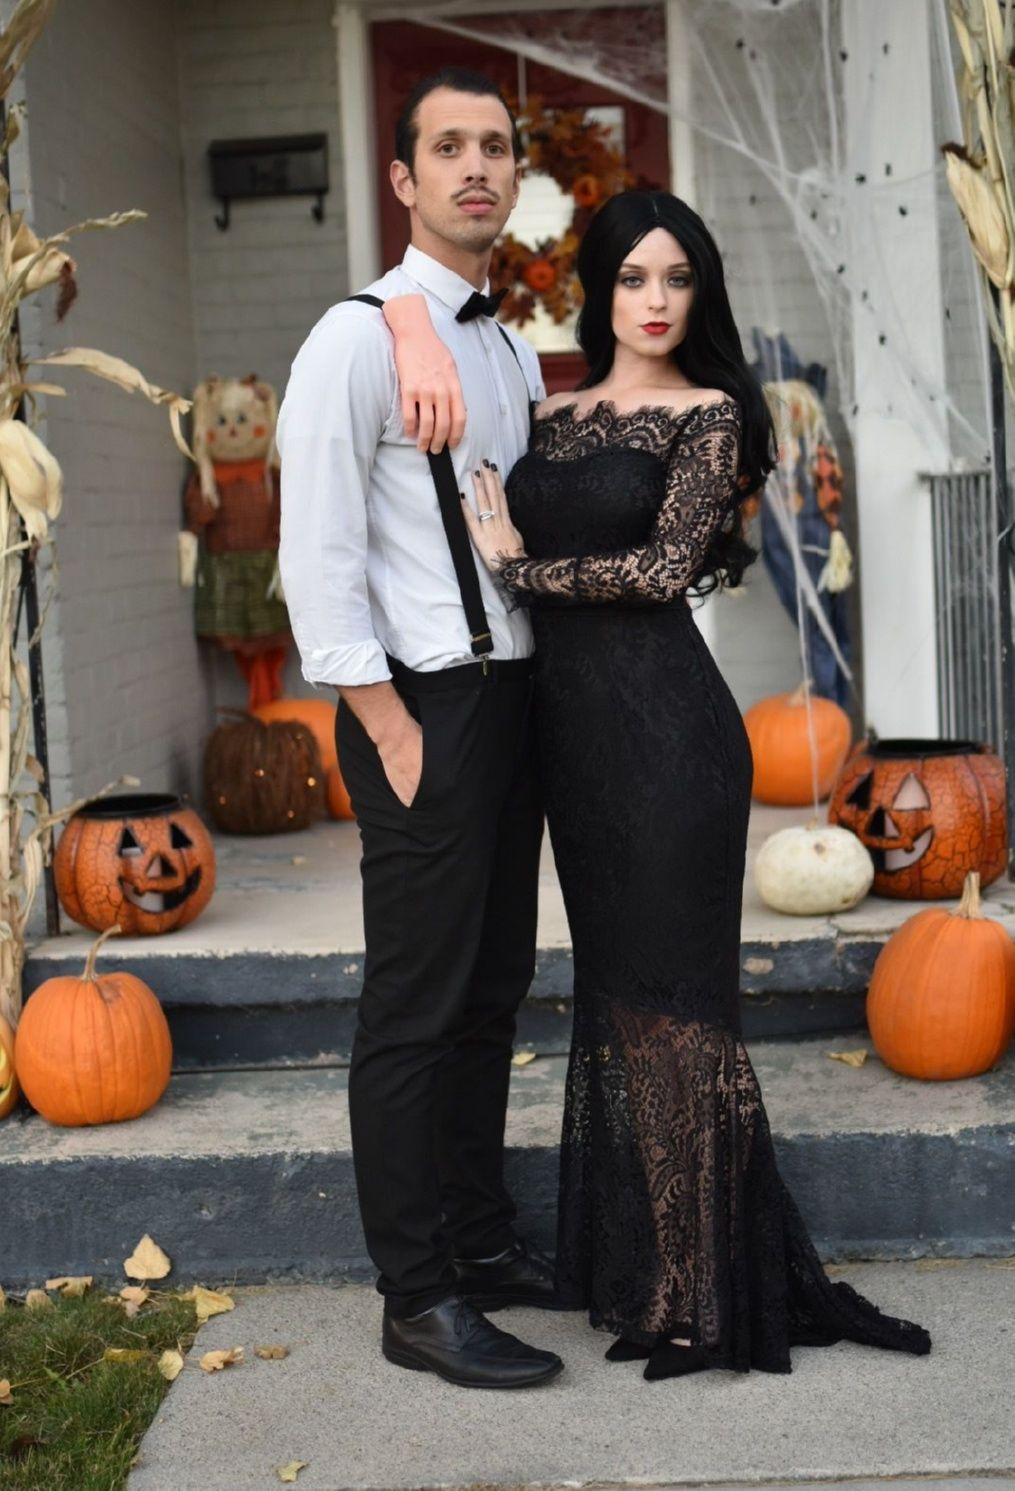 › 90s halloween costumes. Last Minute Halloween Costume… – Riley Alexandra, couples costume idea, halloween, halloween costume, Addams family, couple, family costume. #coupleshalloweencostumeideas